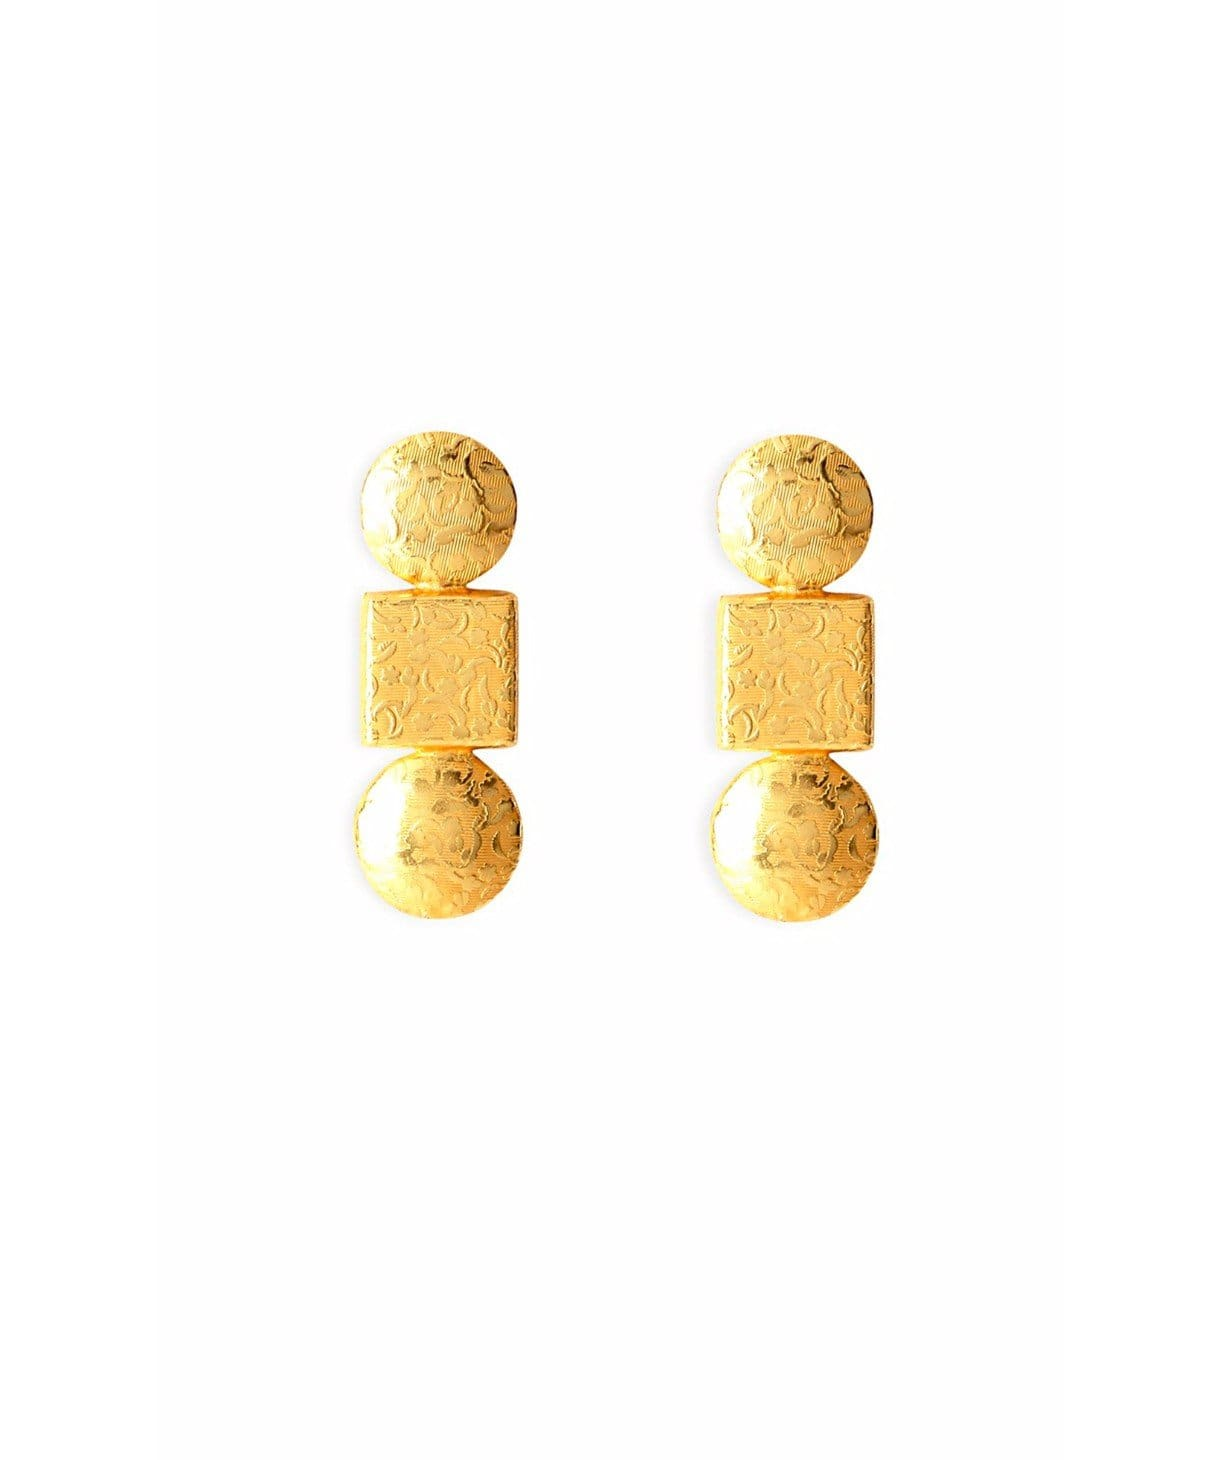 Impression Gold Earrings - Uptownie